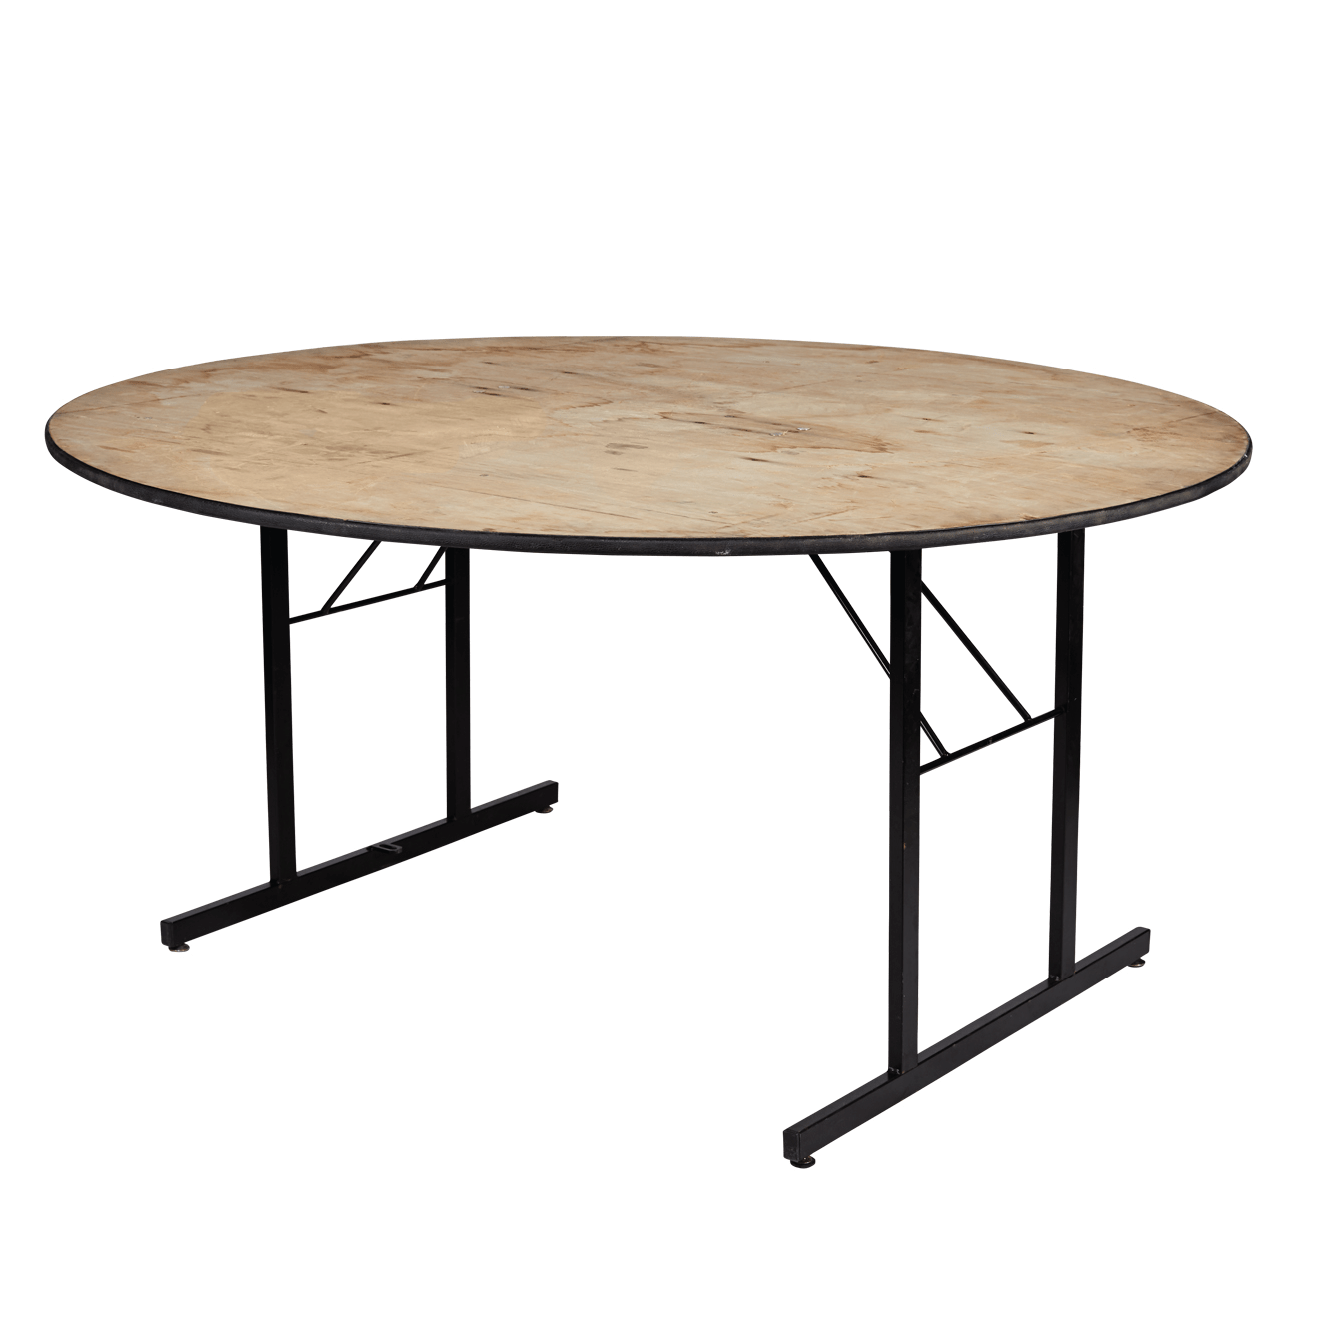 Molleton Table Protège Table Molleton Tissu 180x180 Carcat Location